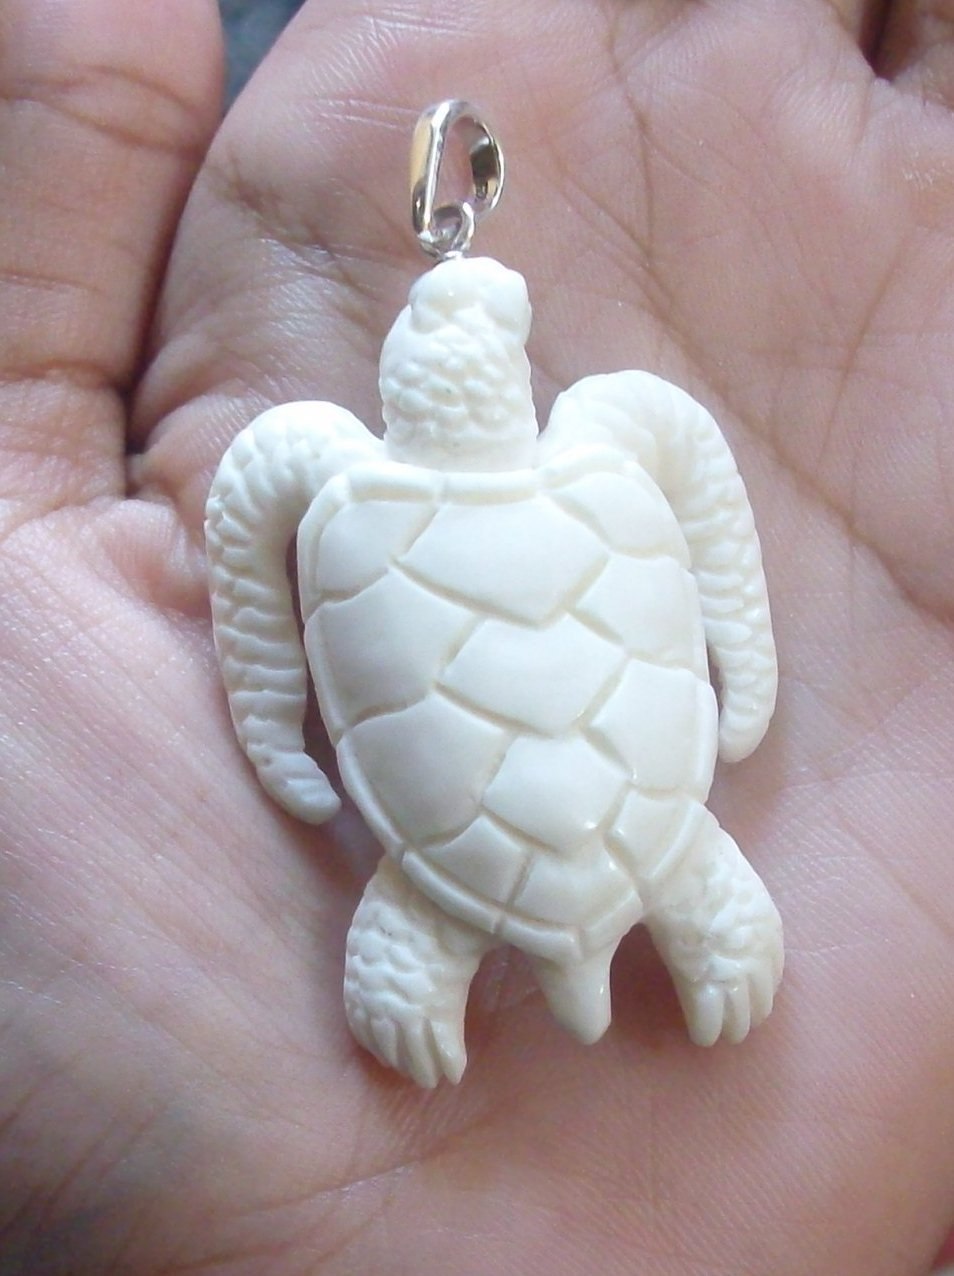 Bali Pendant Necklace TURTLE Double Side F/r Buffalo Bone Carving w/ Silver Bail 925 #r403